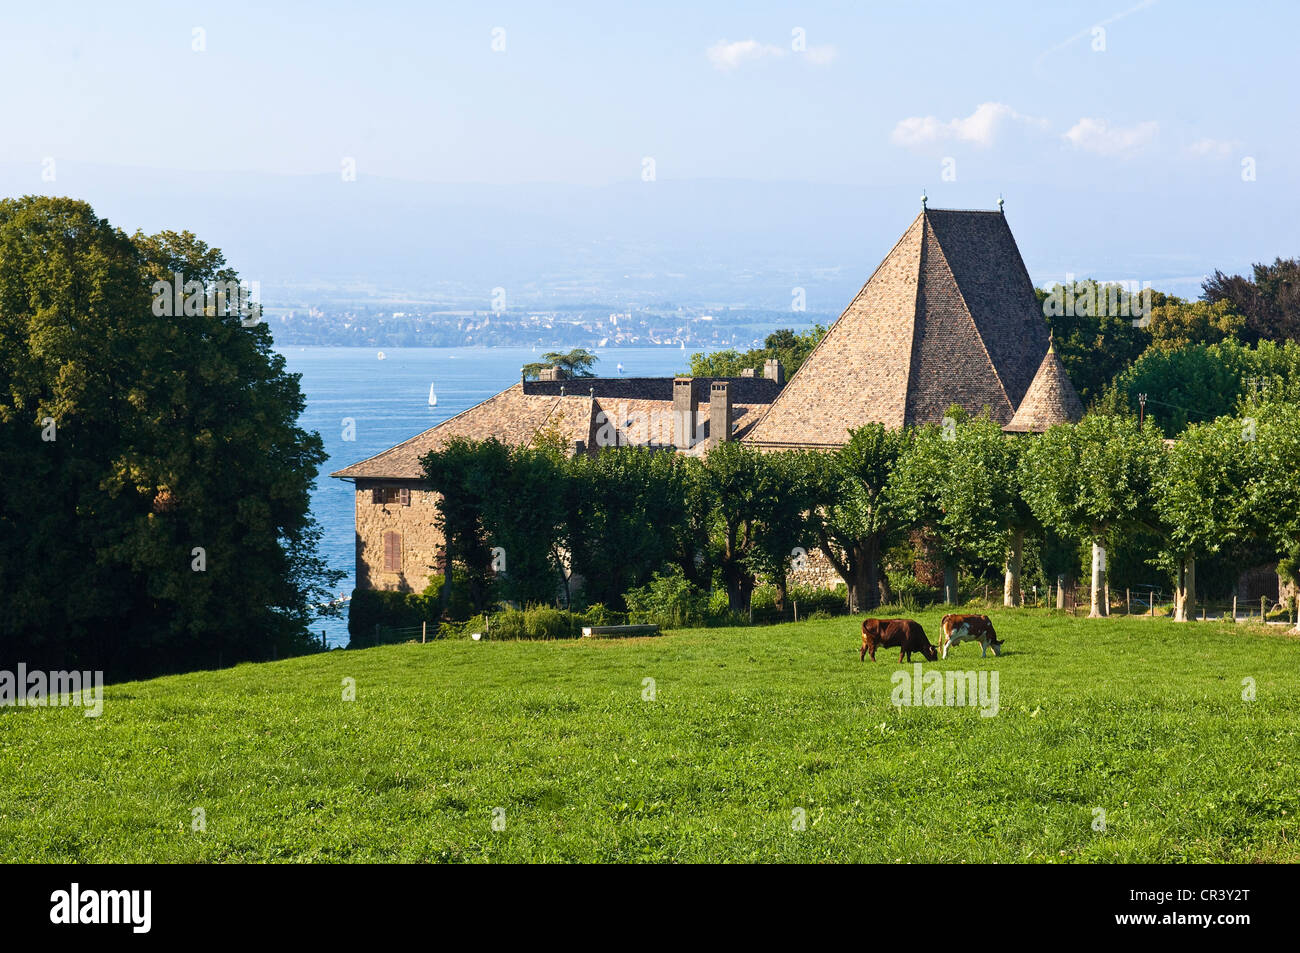 France, Haute Savoie, Chens sur Leman, the Chateau de Beauregard at the Leman Lake - Stock Image